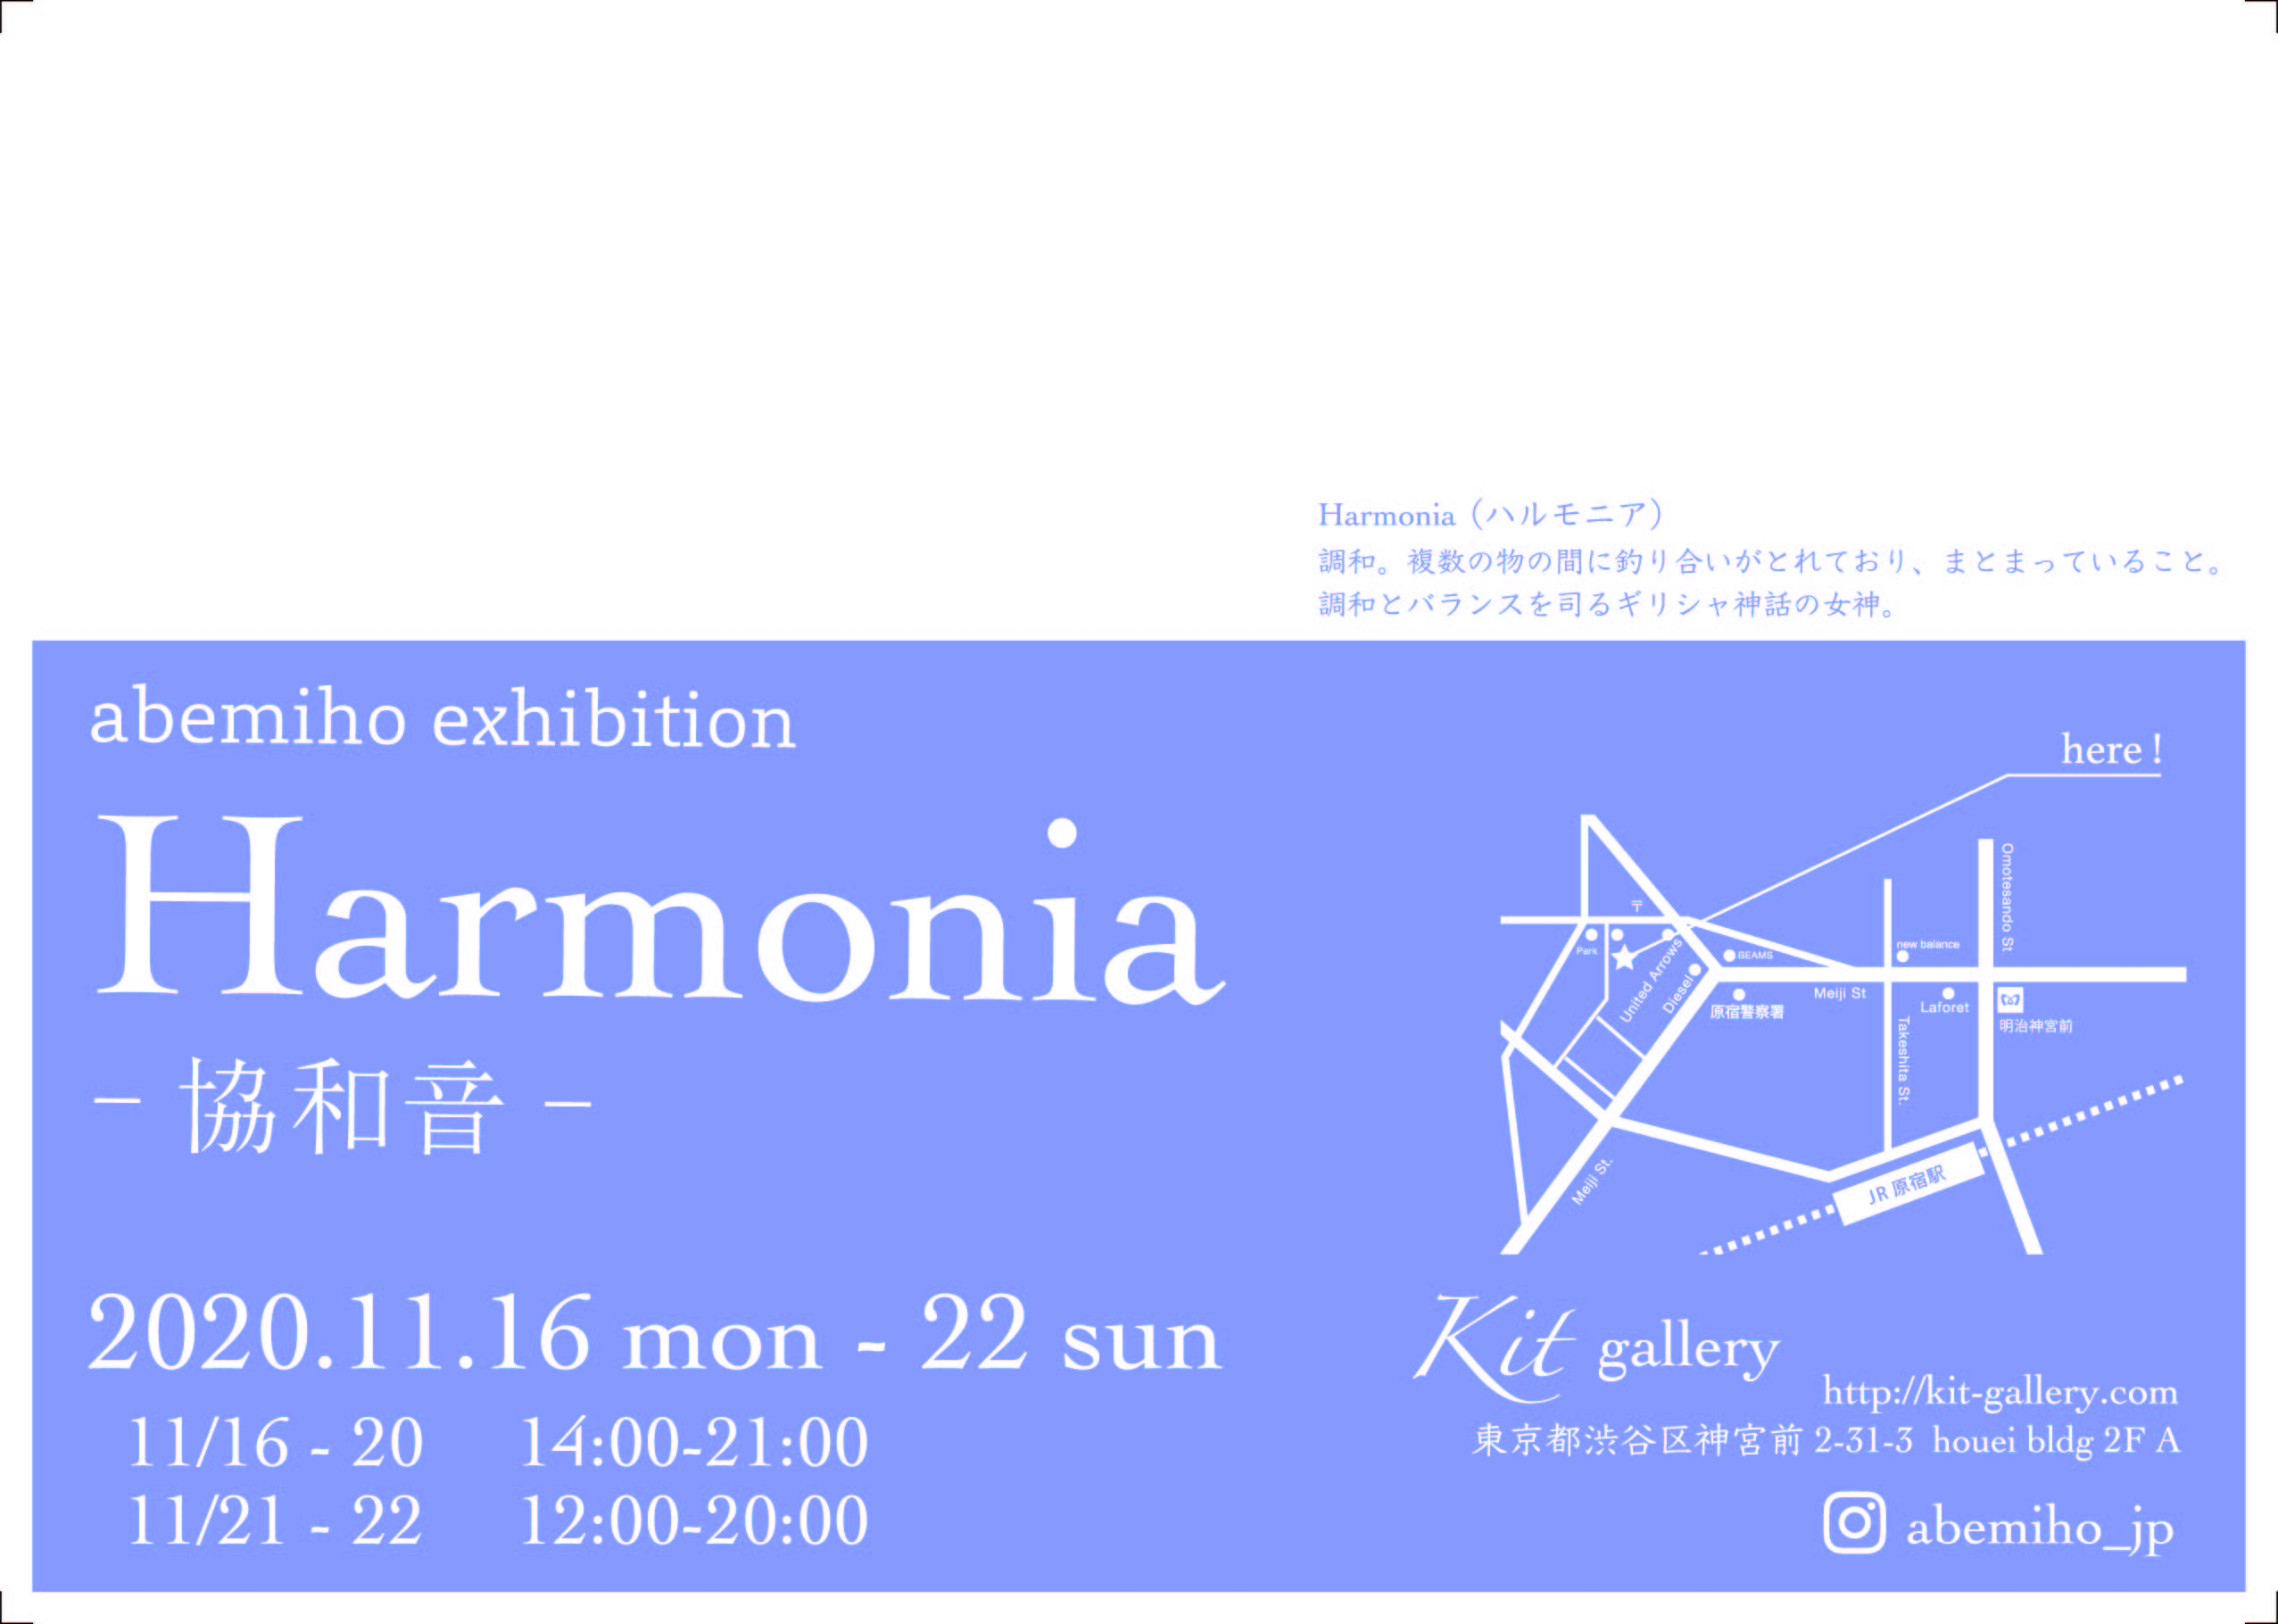 http://kit-gallery.com/schedule/files/harmonia-2.jpg